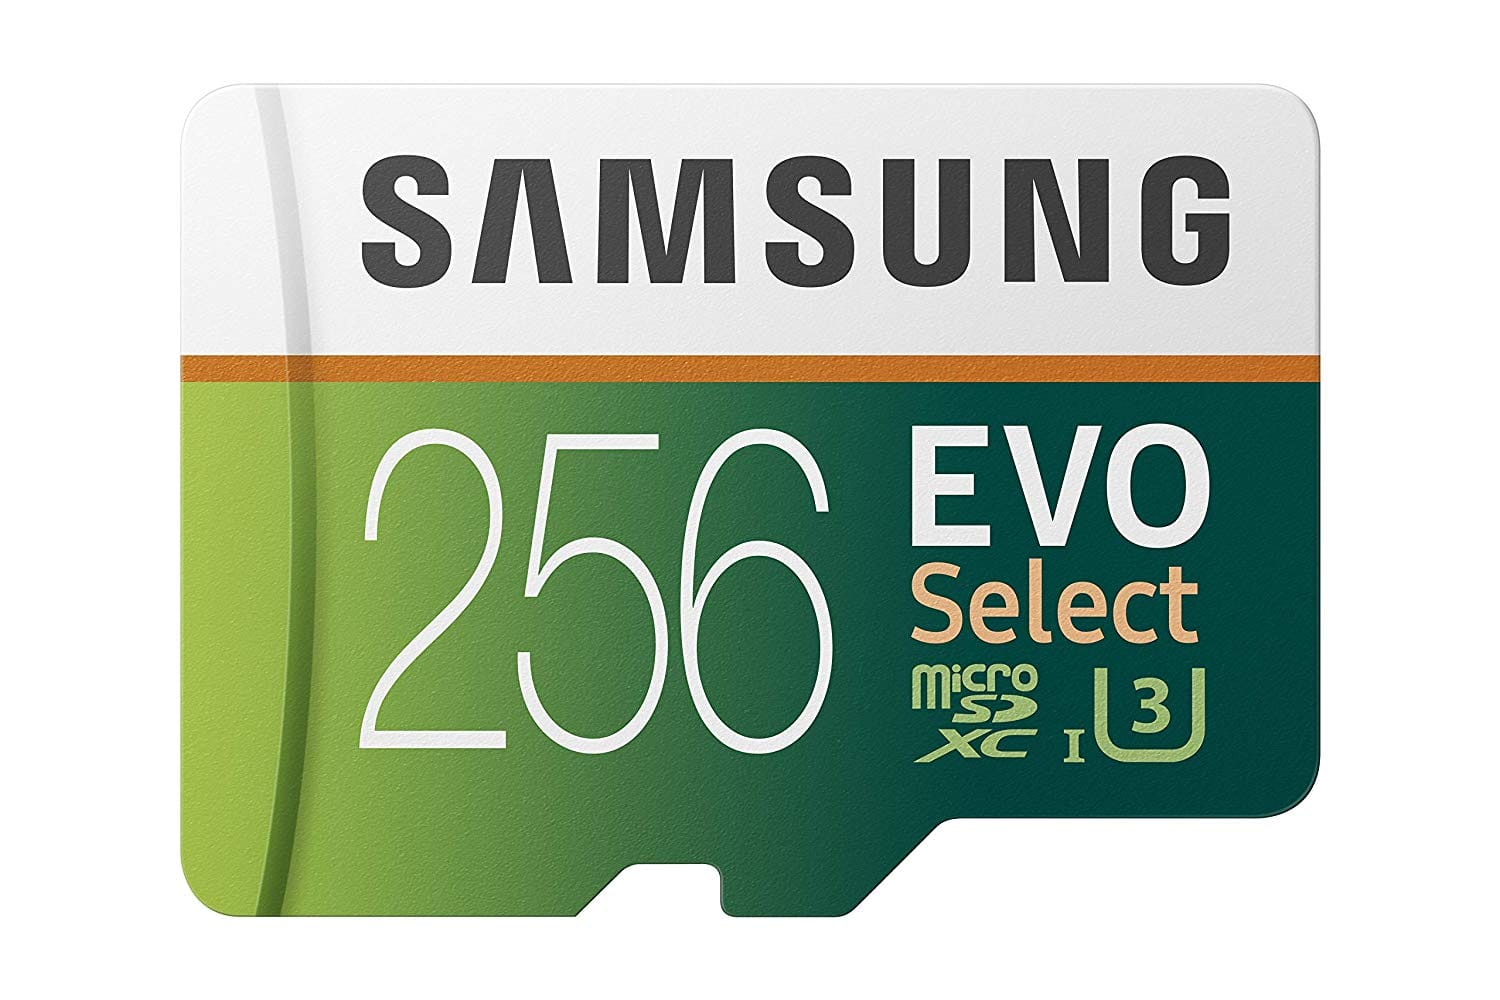 Samsung 256GB 100MB/s (U3) MicroSDXC EVO Memory Card $37 Amazon